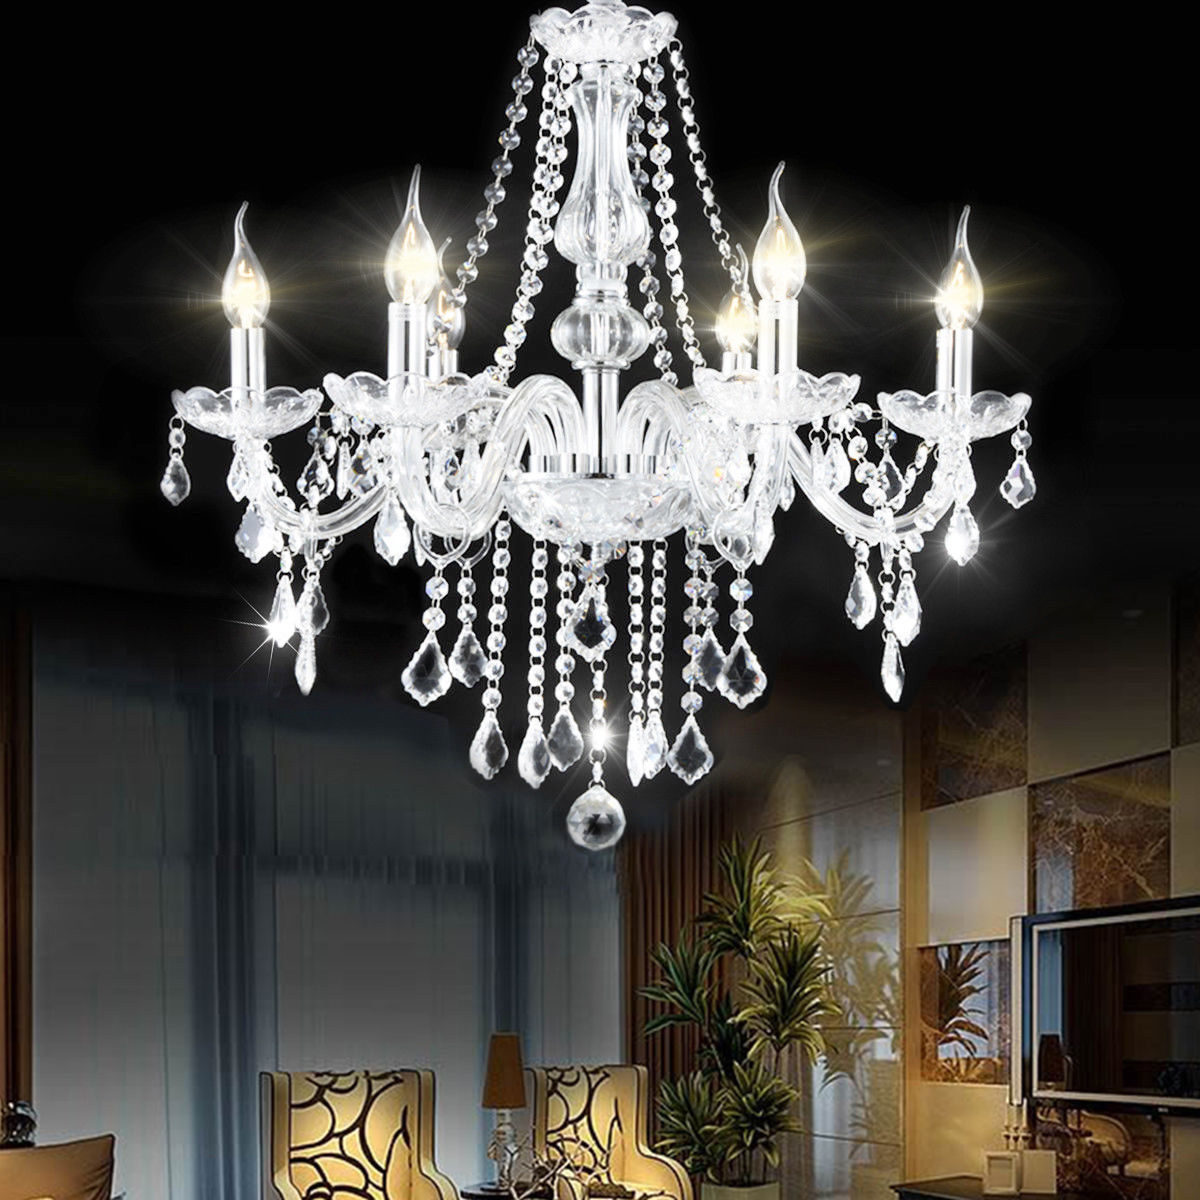 Costway Elegant Crystal Chandelier Modern 6 Ceiling Light Lamp Pendant Fixture Lighting by Costway